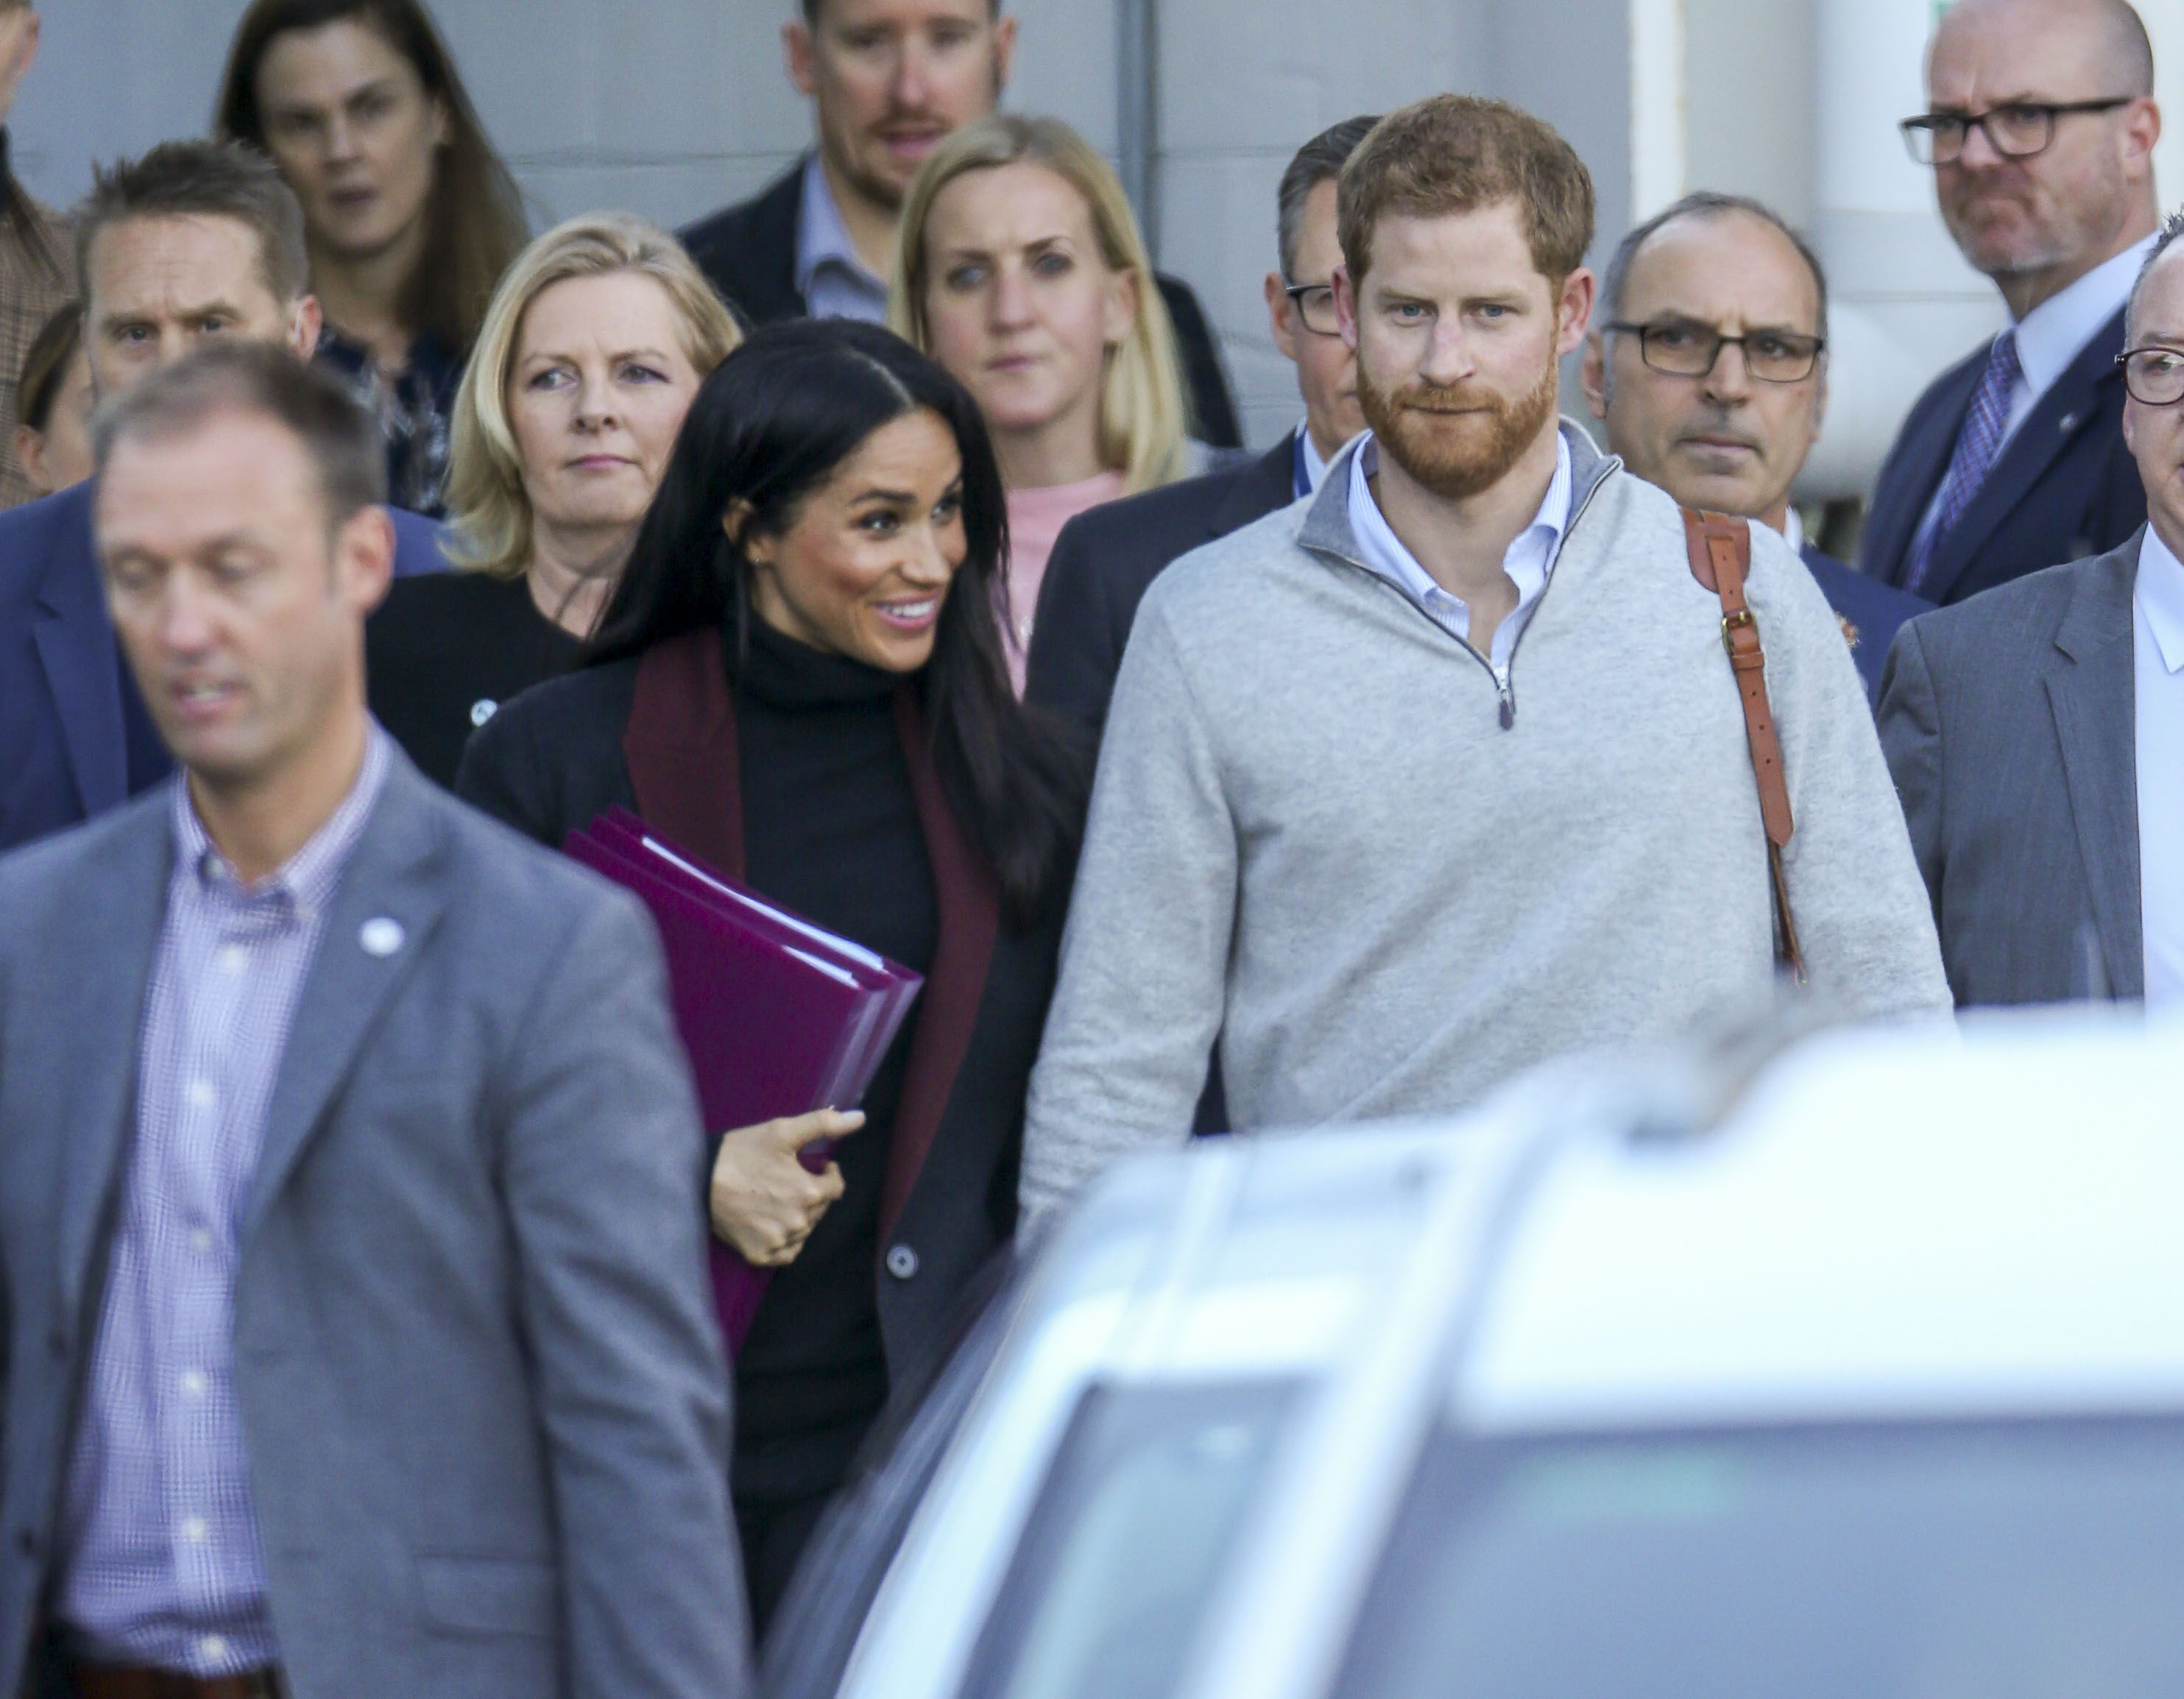 Meghan and Harry's baby will be her first grandchild.